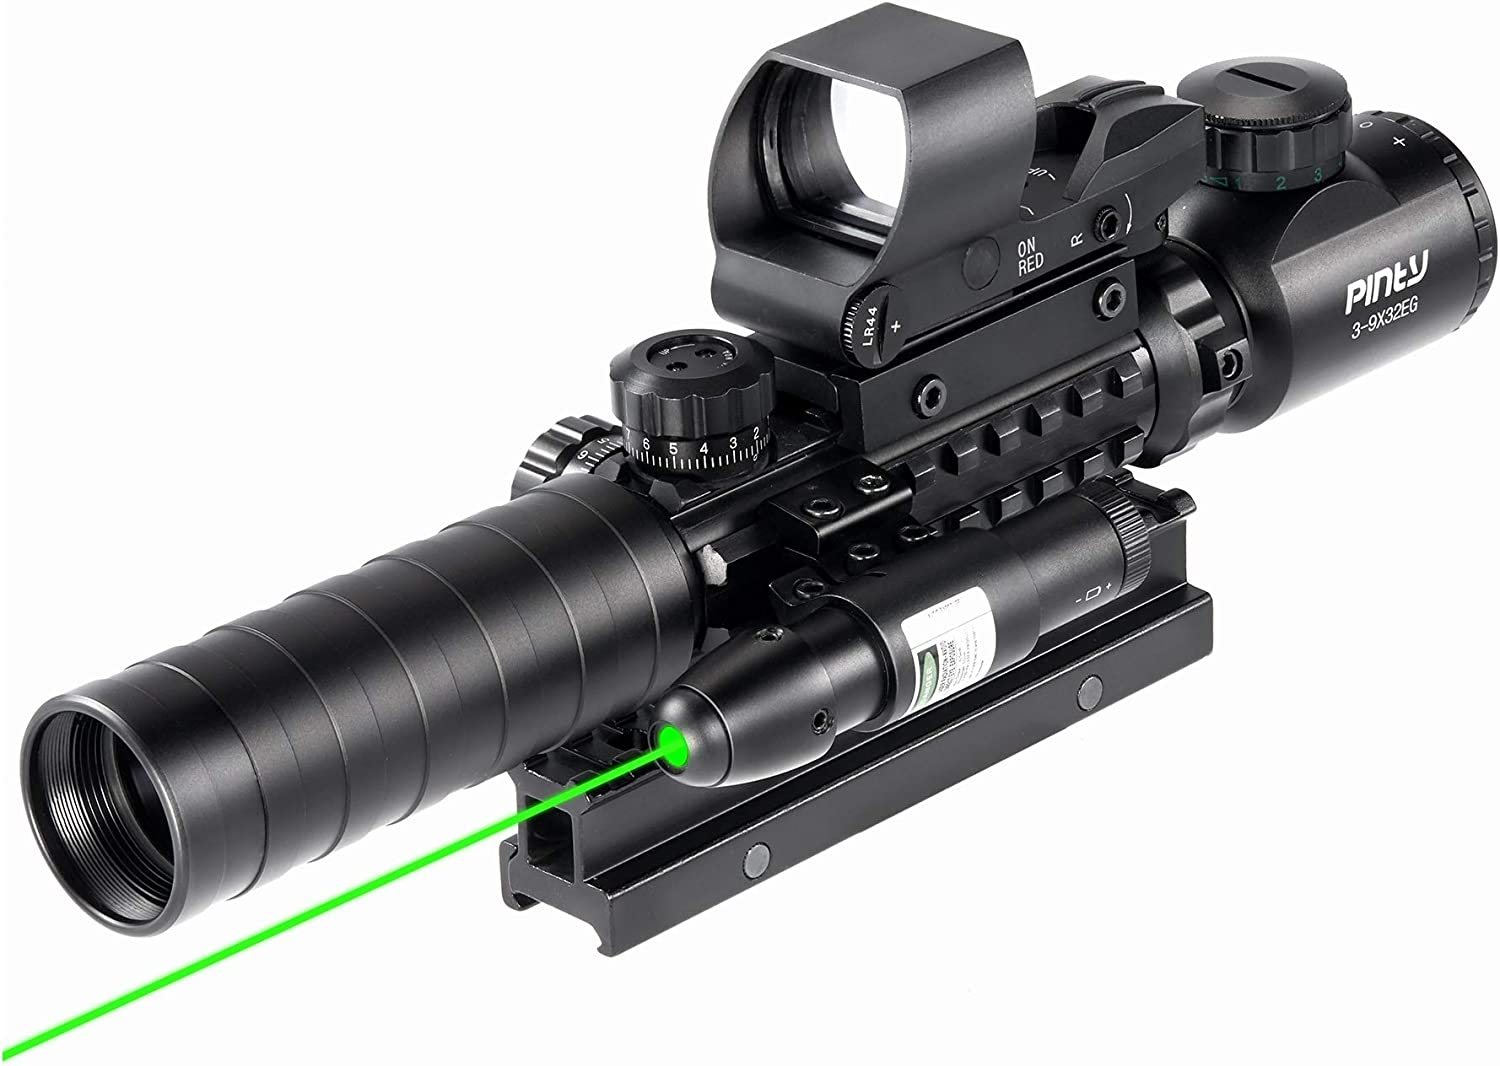 Pinty Rifle Scope 3-9x32 Rangefinder Illuminated Reflex Sight